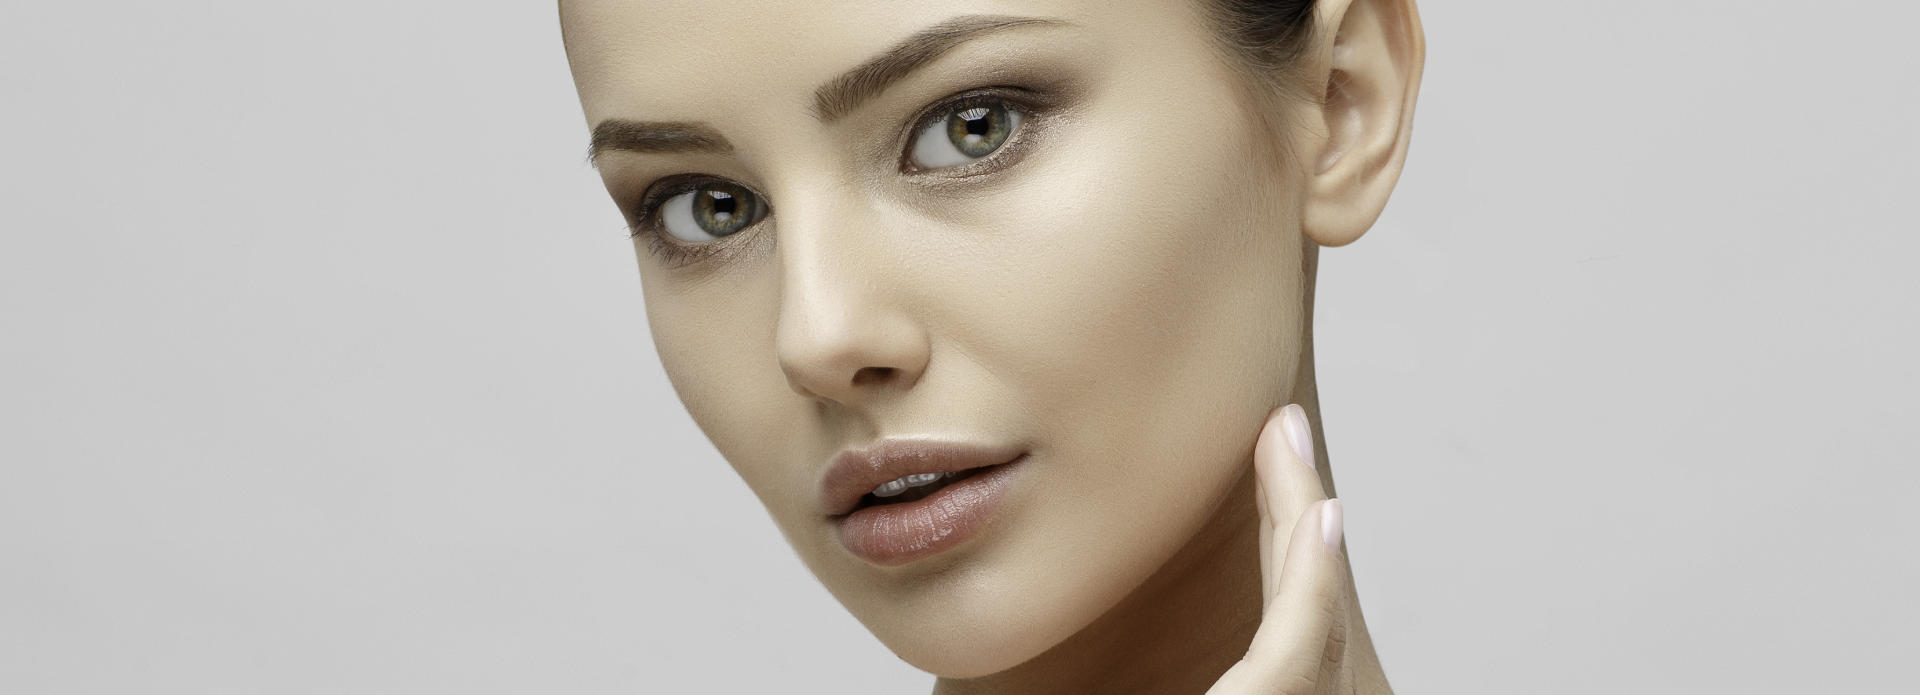 Face of a woman with flawless skin after facial laser treatment.